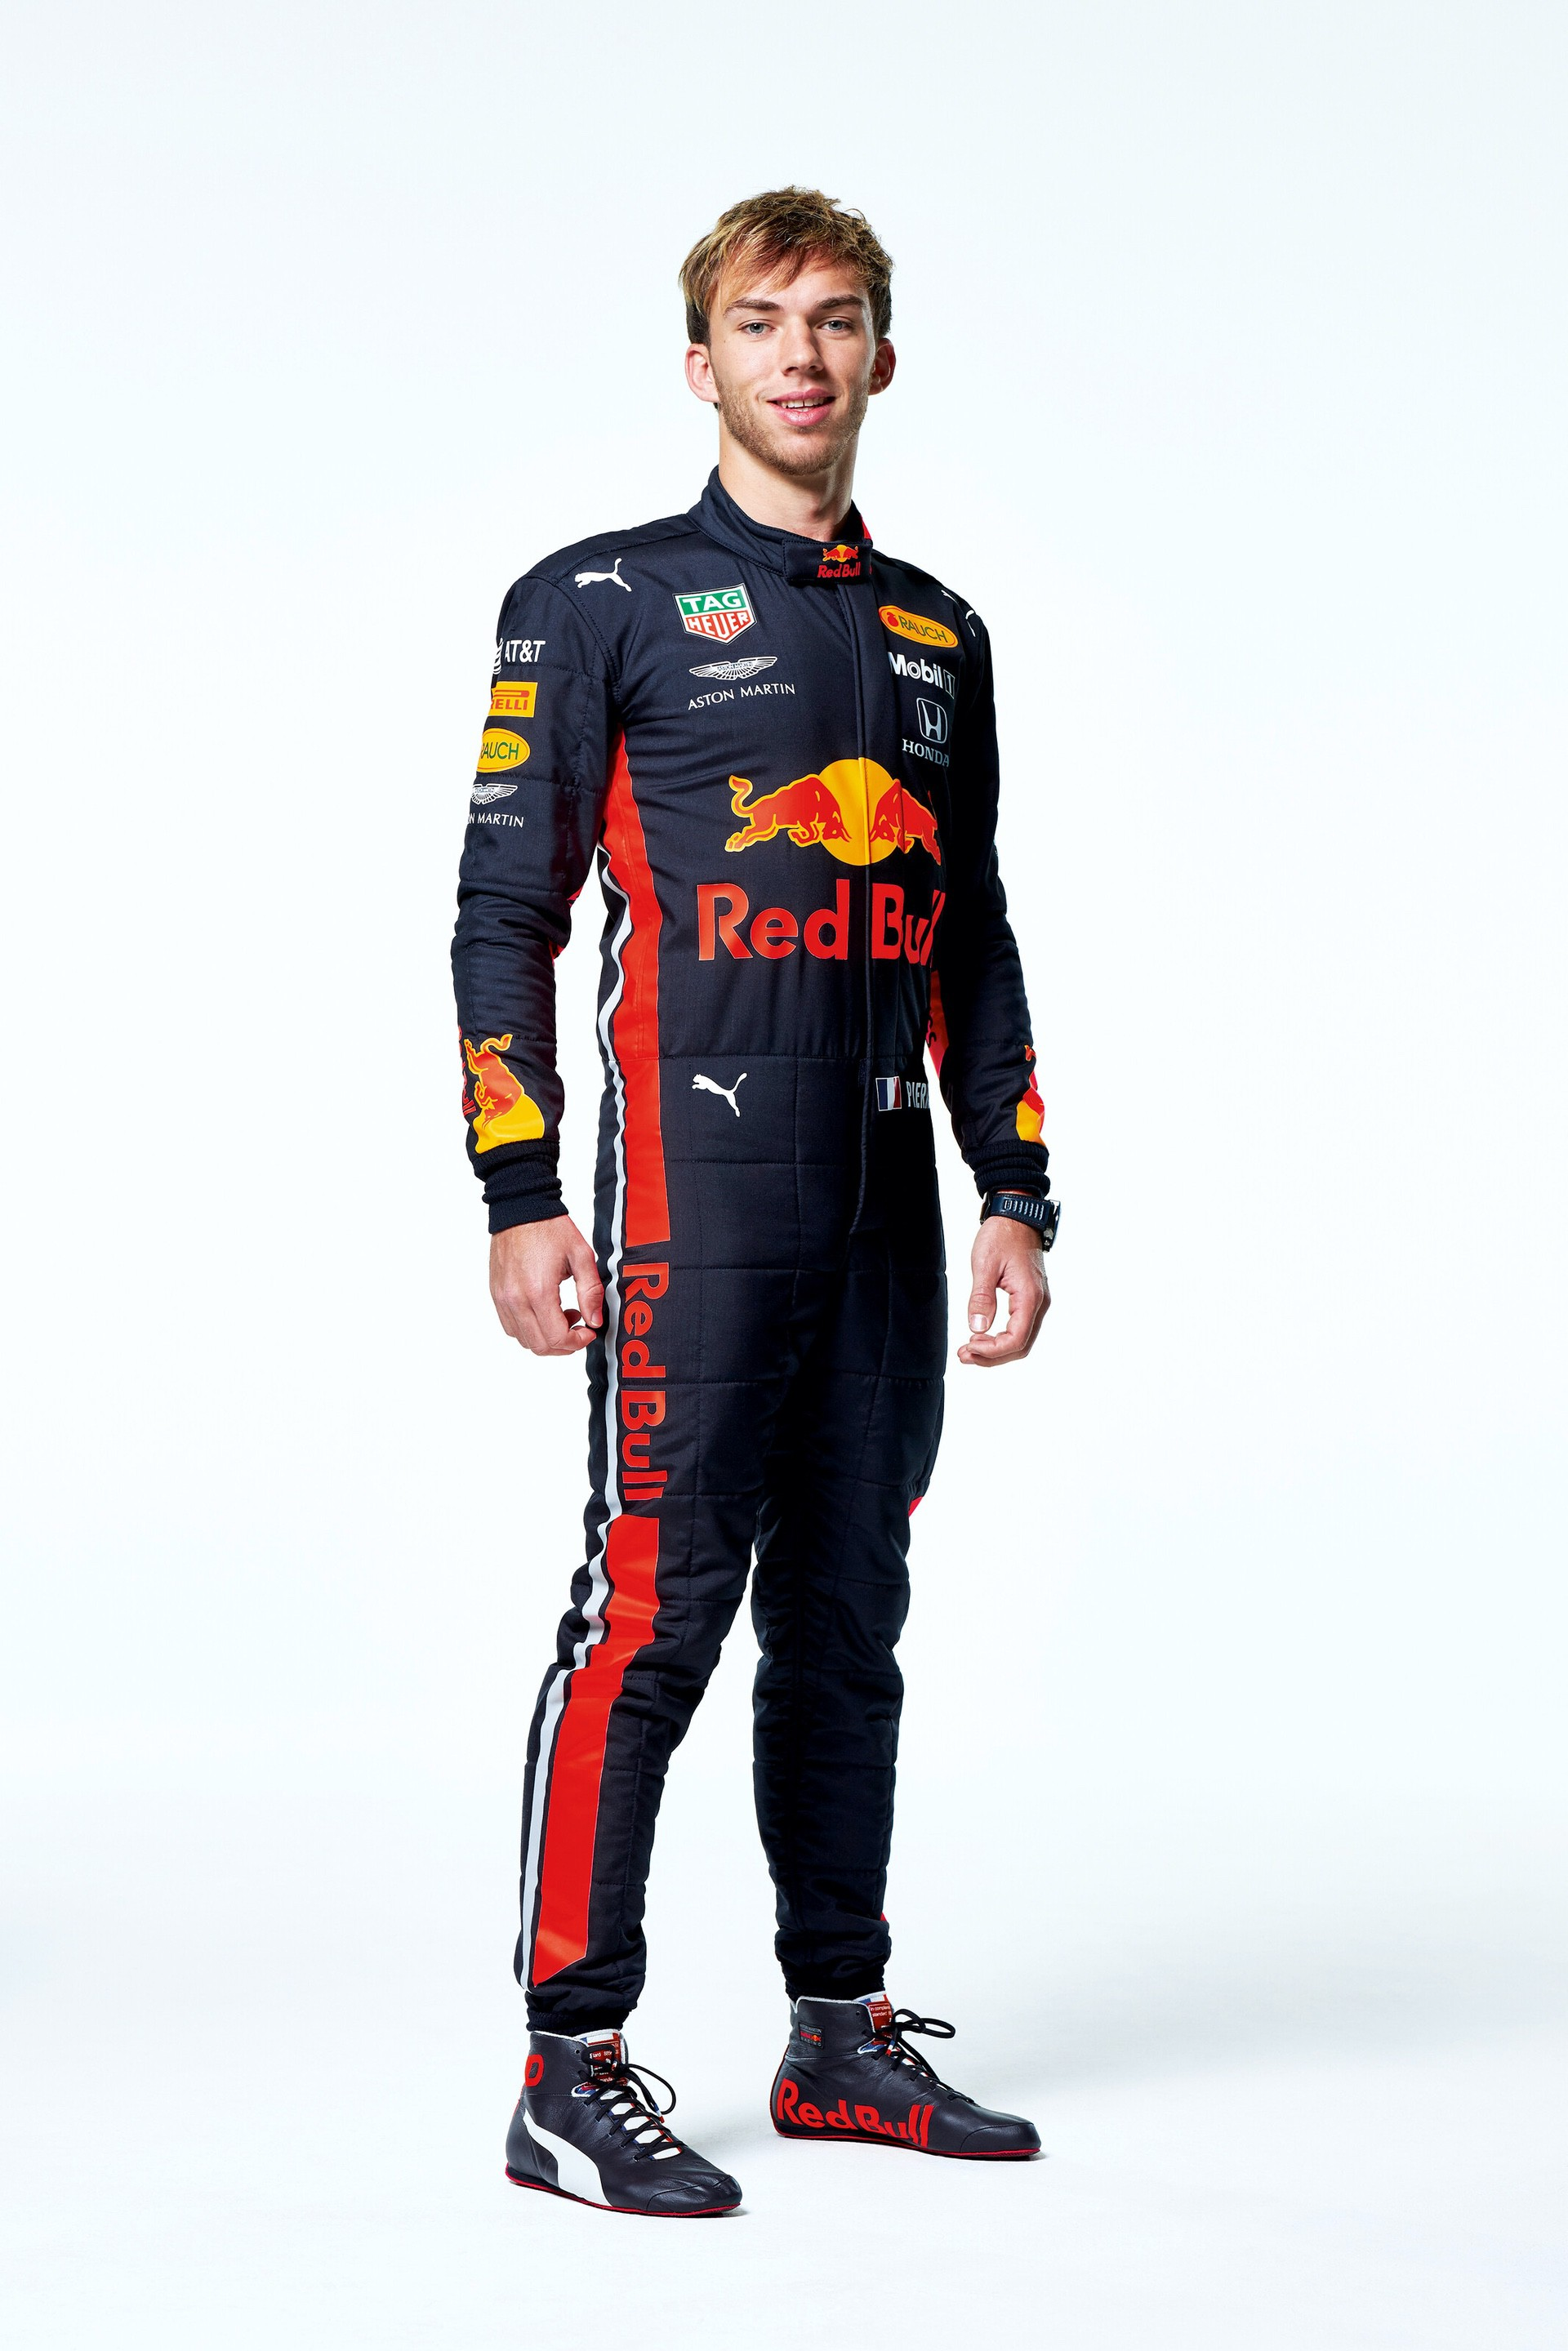 Pierre Gasly seen during the Red Bull Racing 2019 Studio Shoot, February 2019, United Kingdom // Dustin Snipes/Red Bull Content Pool // AP-1YFPFH9PD1W11 // Usage for editorial use only // Please go to www.redbullcontentpool.com for further information. //